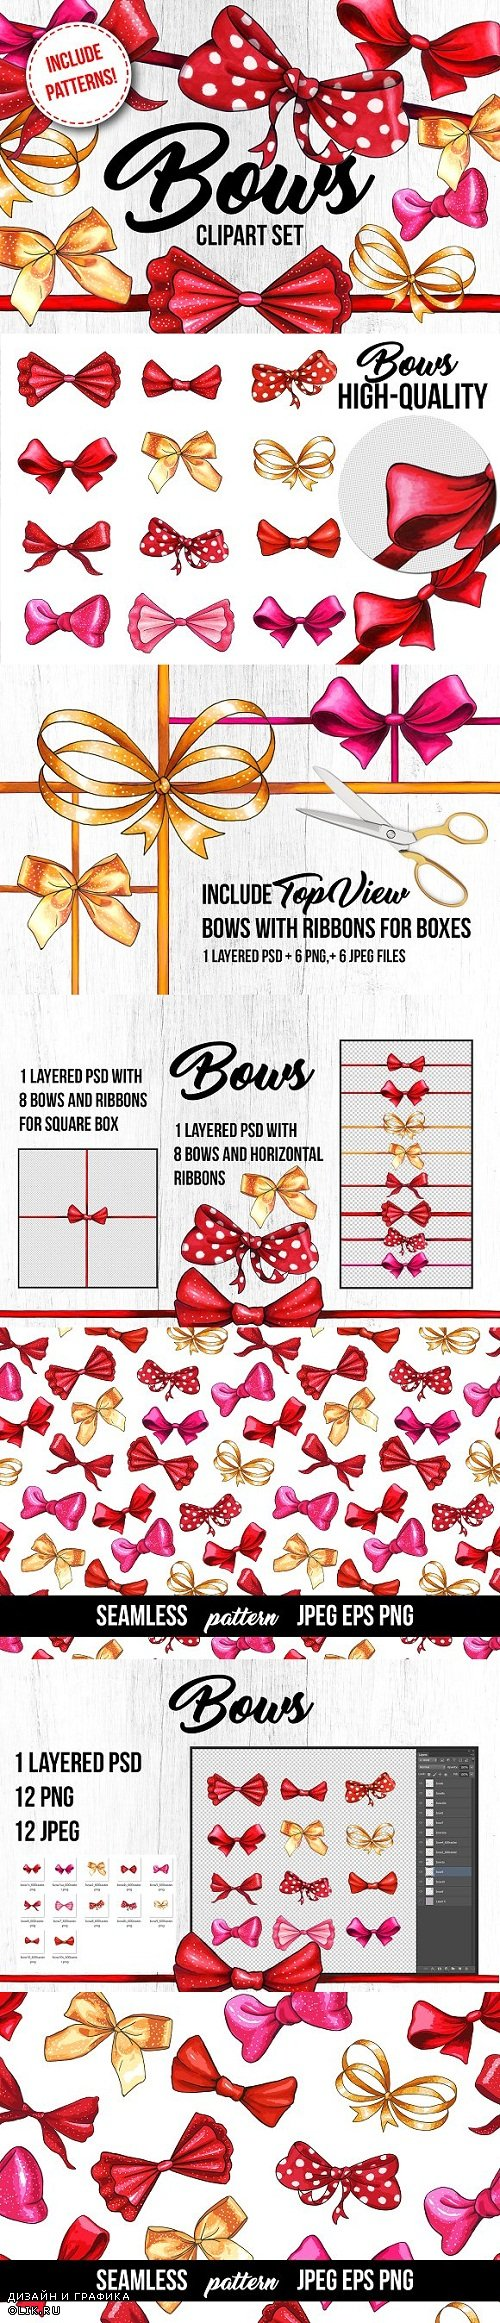 Bows and Ribbons Marker Clipart - 3371003